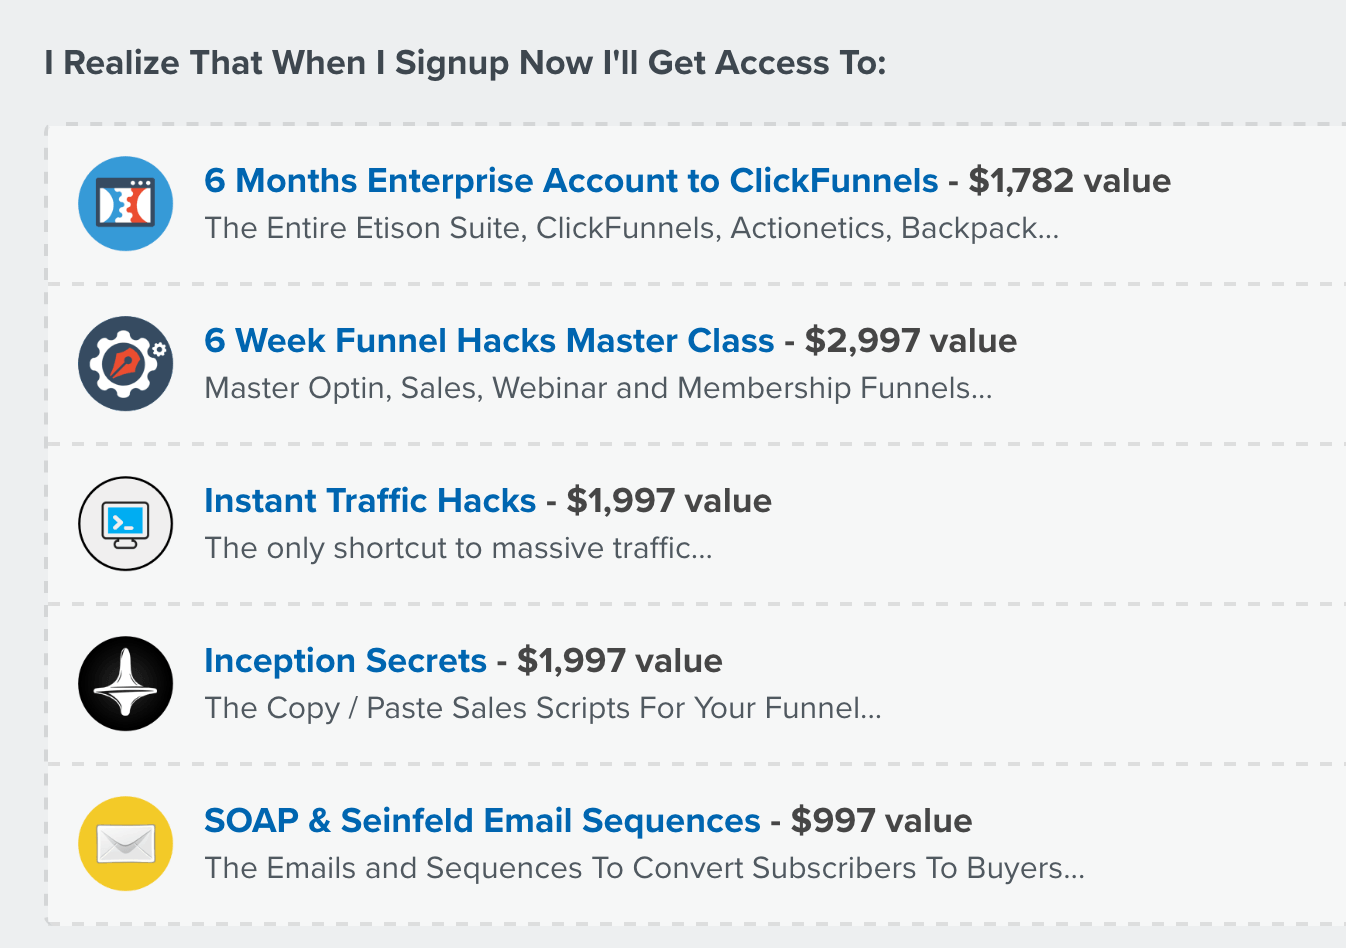 Why Is Clickfunnels So Expensive